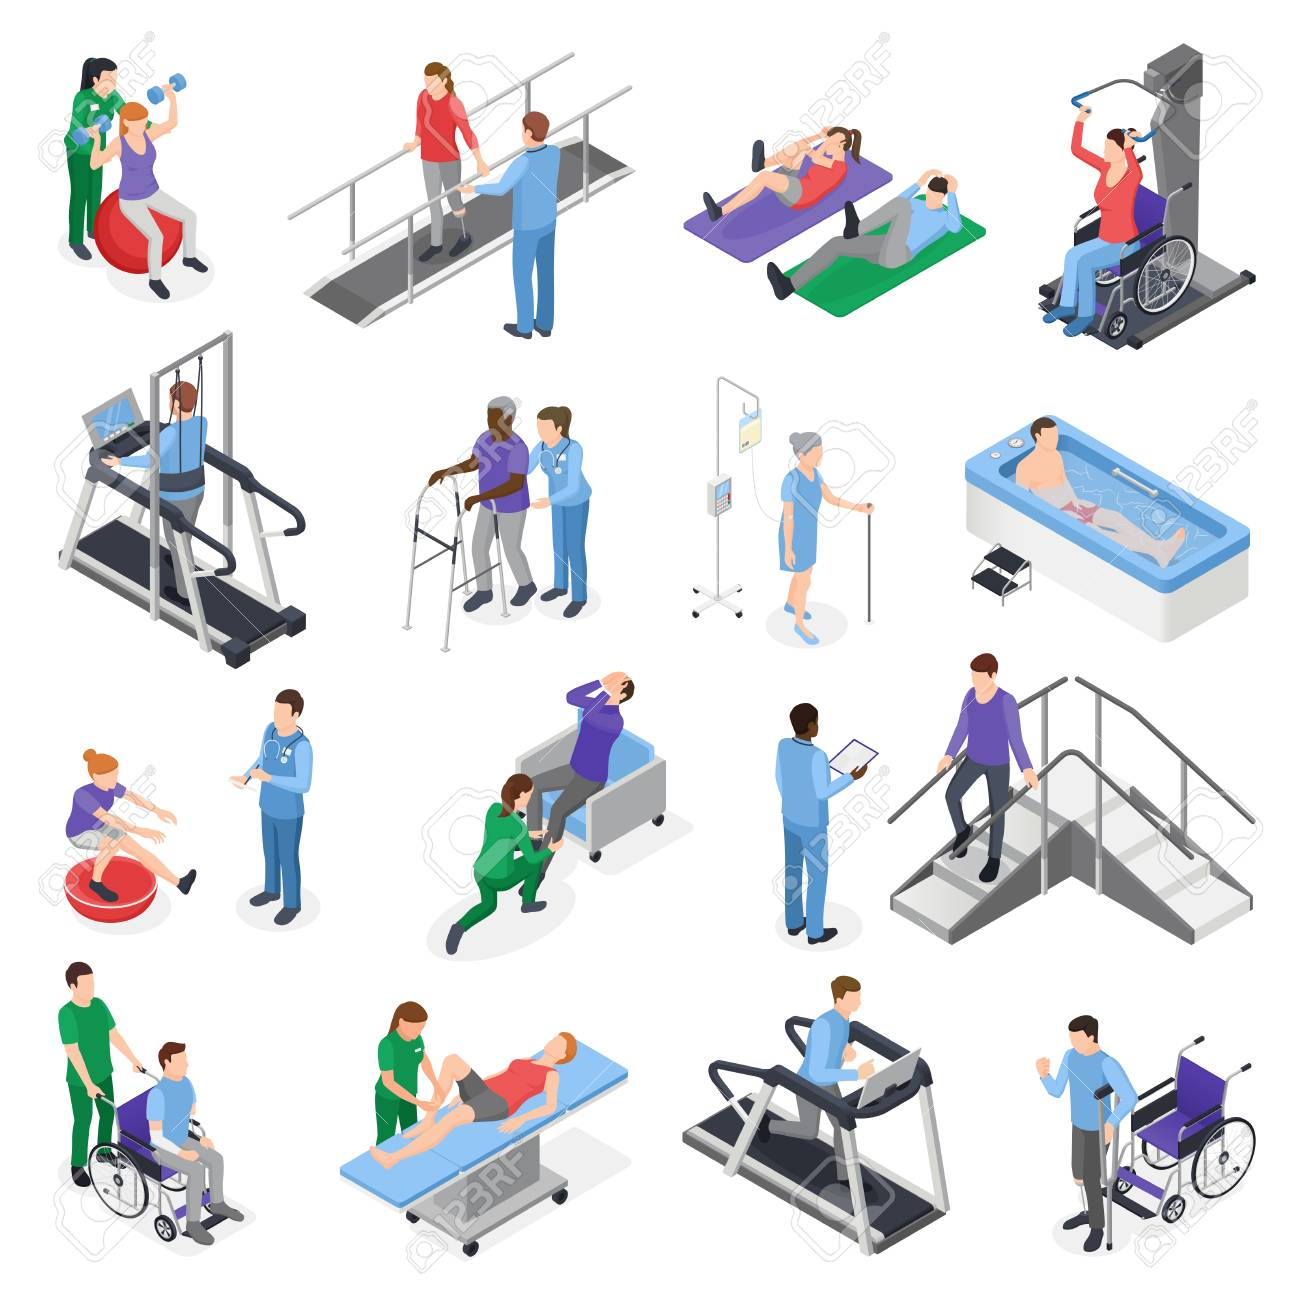 Physiotherapy rehabilitation clinic isometric icons set with nursing staff treatment equipment simulators patient recovery isolated vector illustration - 103669690